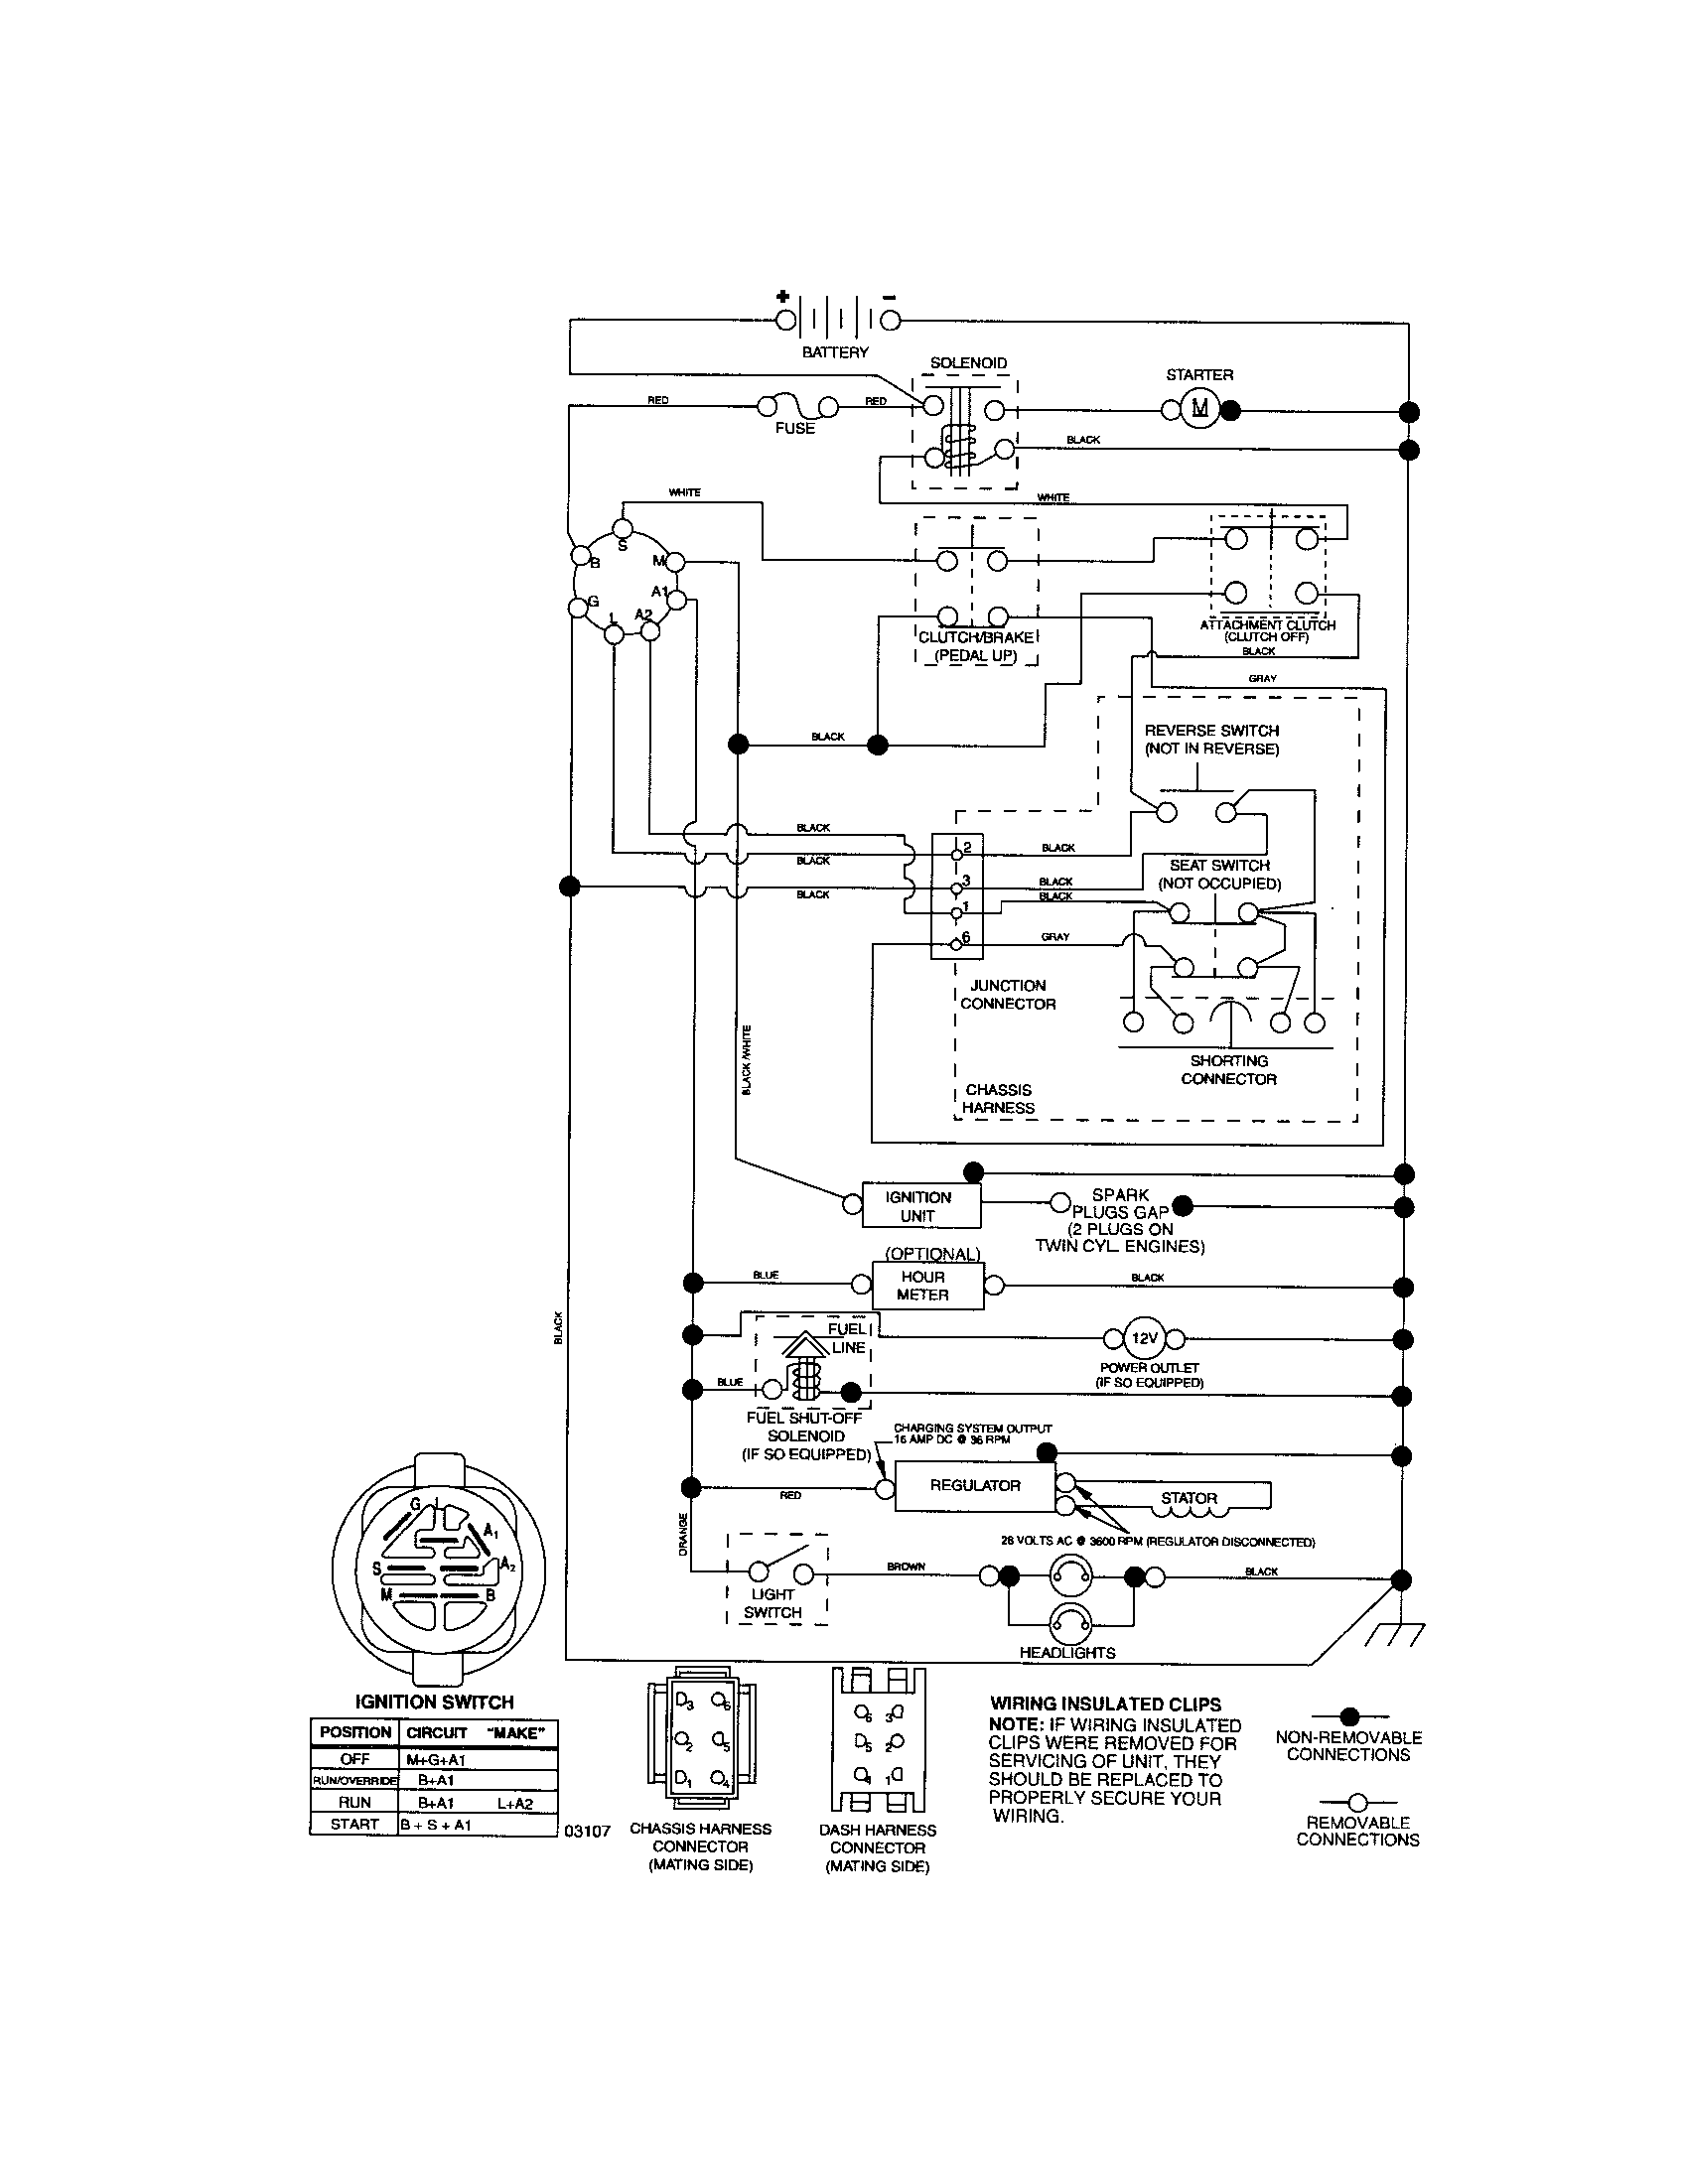 6af5f1447fd13c8443376822ddc1e105 craftsman riding mower electrical diagram wiring diagram lawn mower wiring diagram at soozxer.org